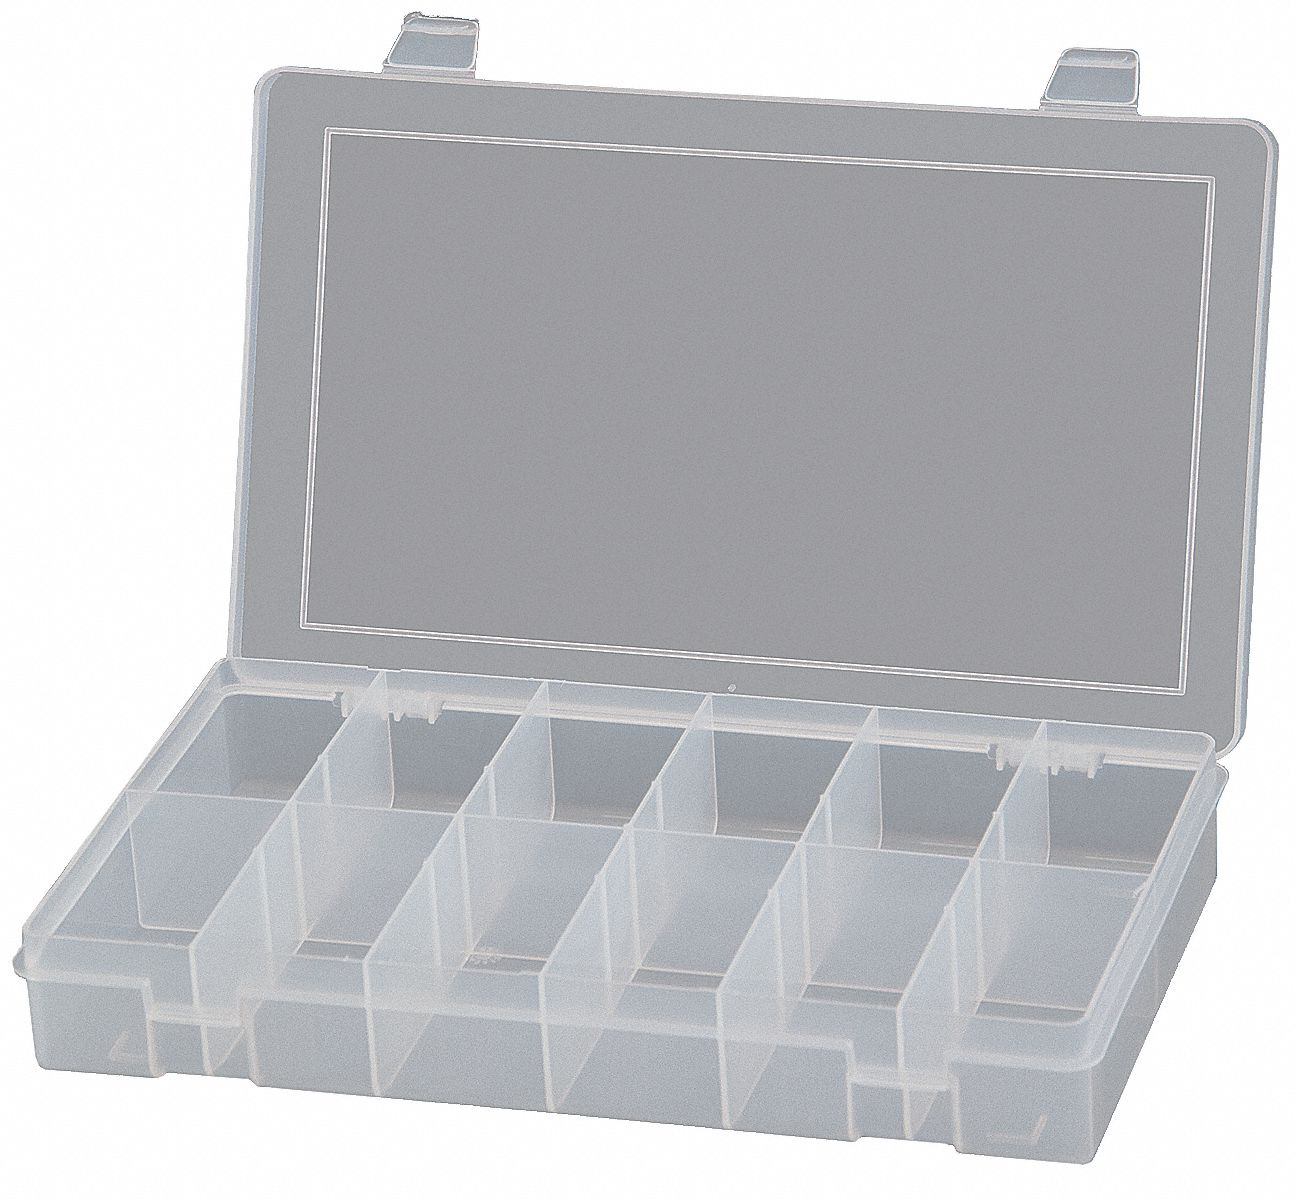 Durham Compartment Box 12 Compartments Clear 15v201 Sp12